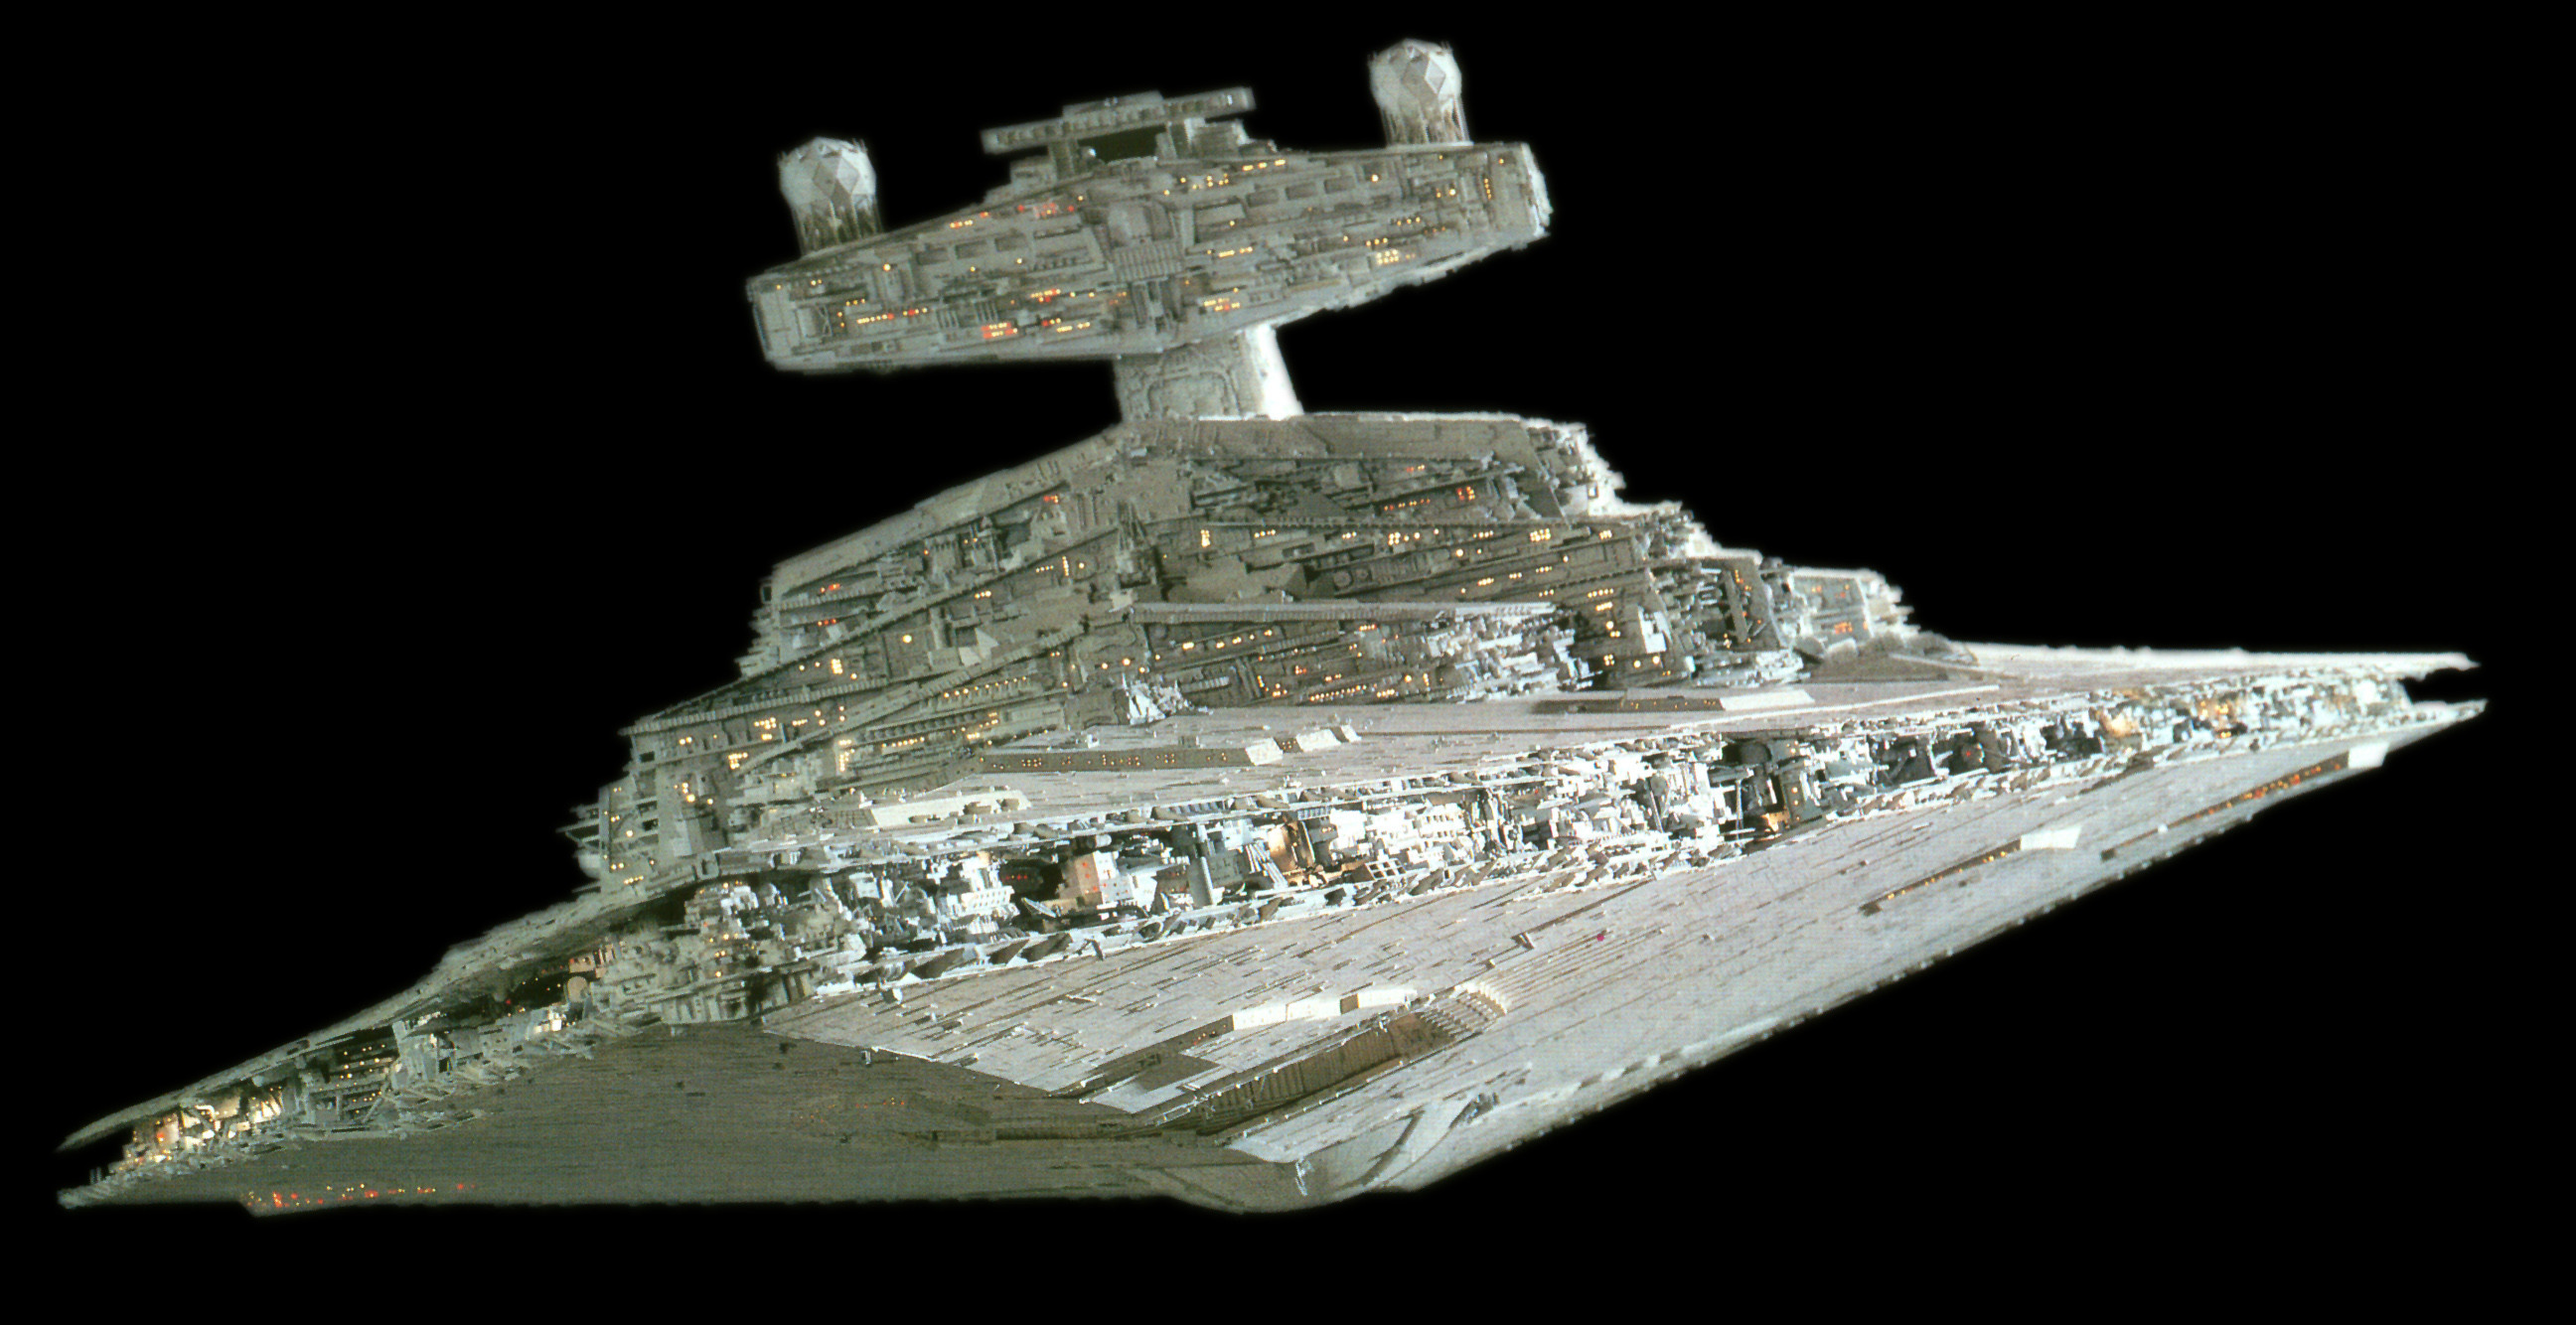 2593x1334 ... 2593 × 1334 in Large hi-resolution Star Destroyer wallpapers